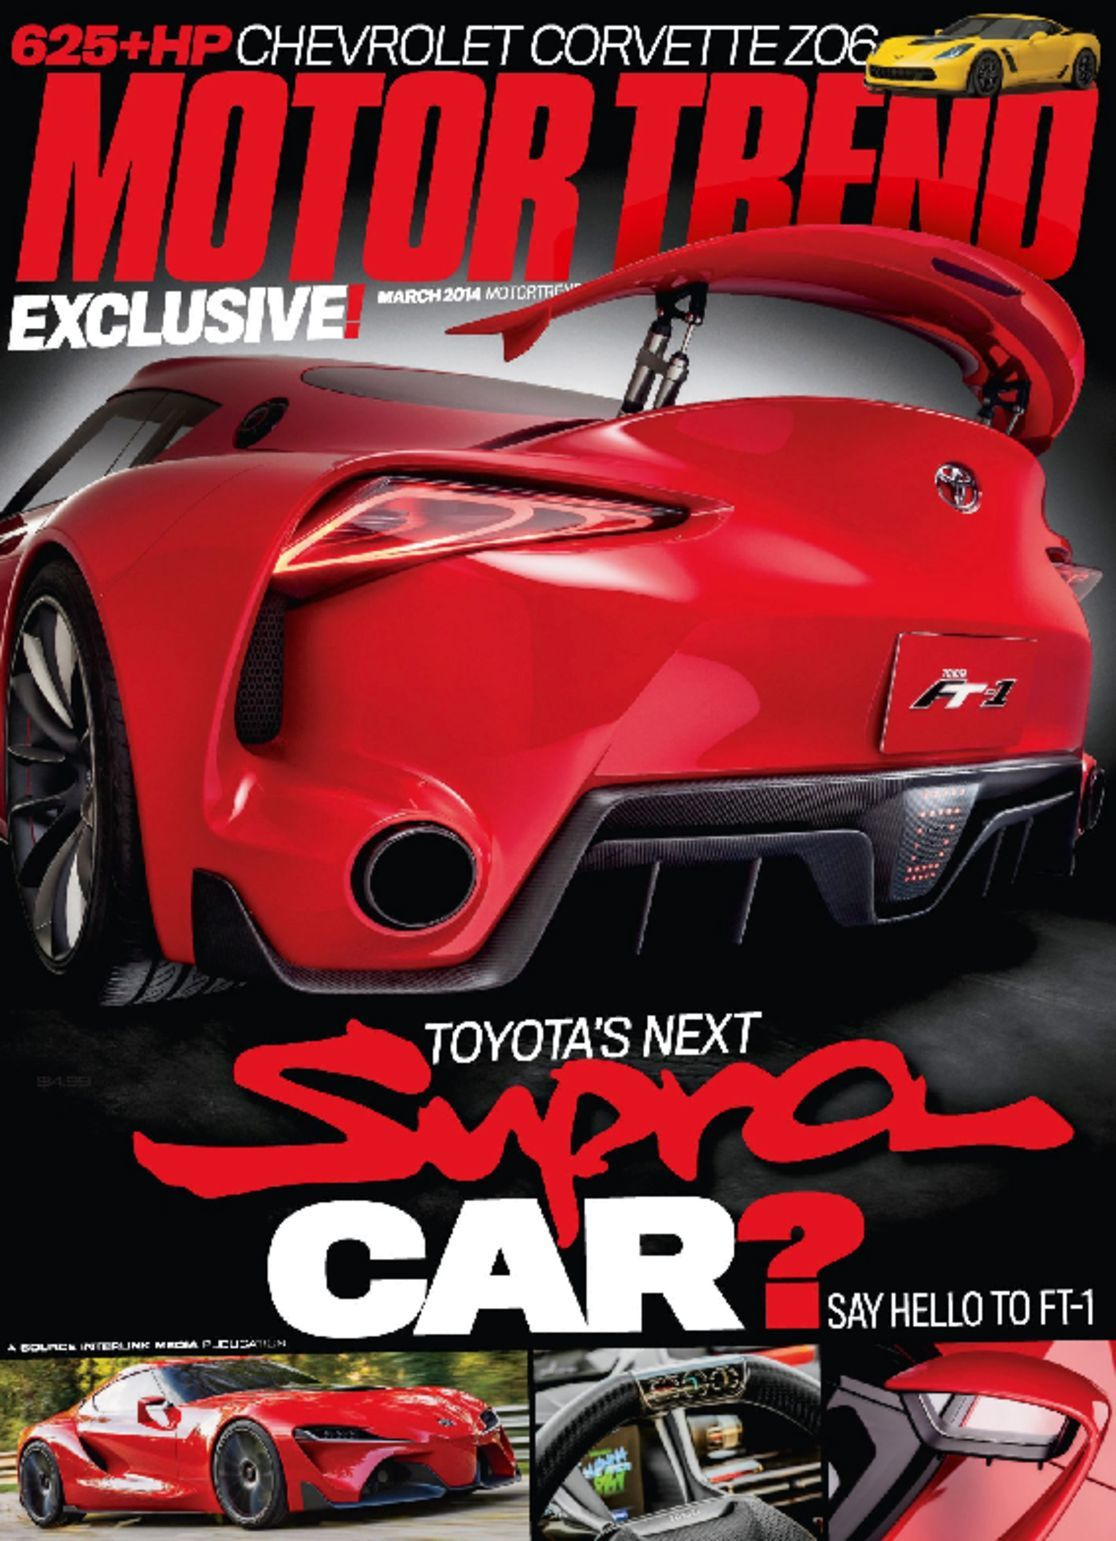 Motor Trend Magazine Subscription Deal 1 Year For